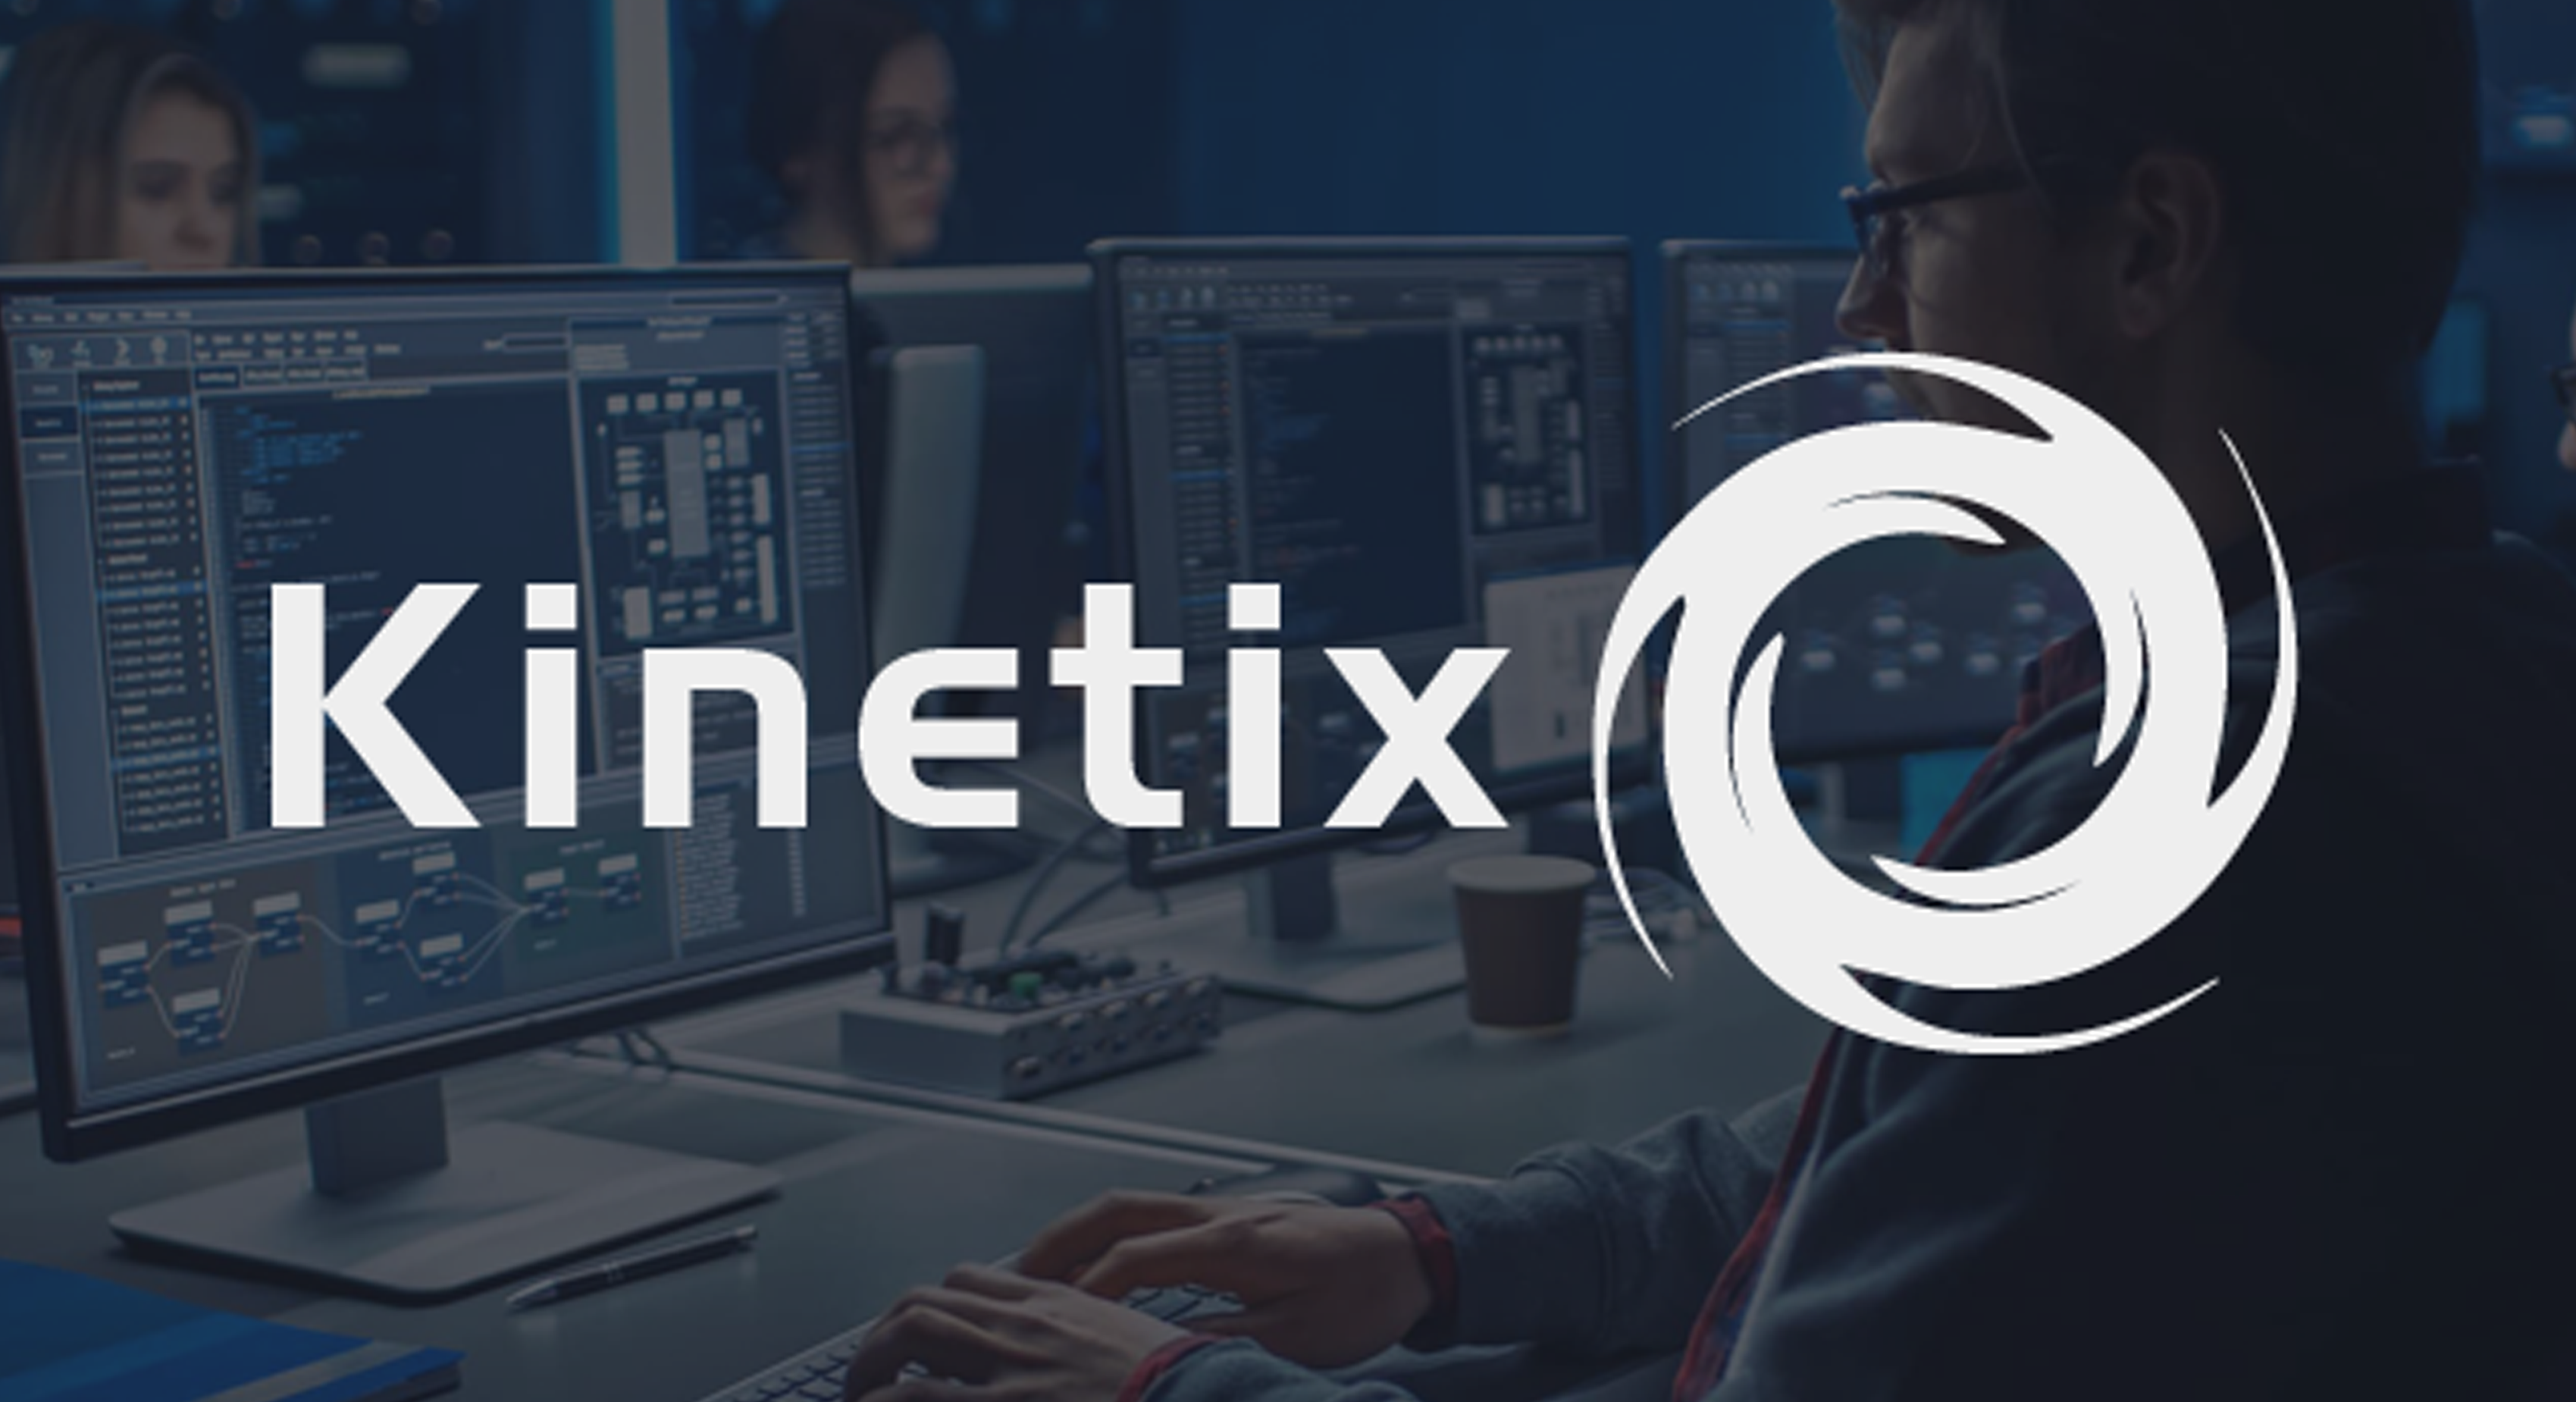 Kinetix Leverages its Trusted Partnership with OneLogin to Increase Annual Revenue by $240,000